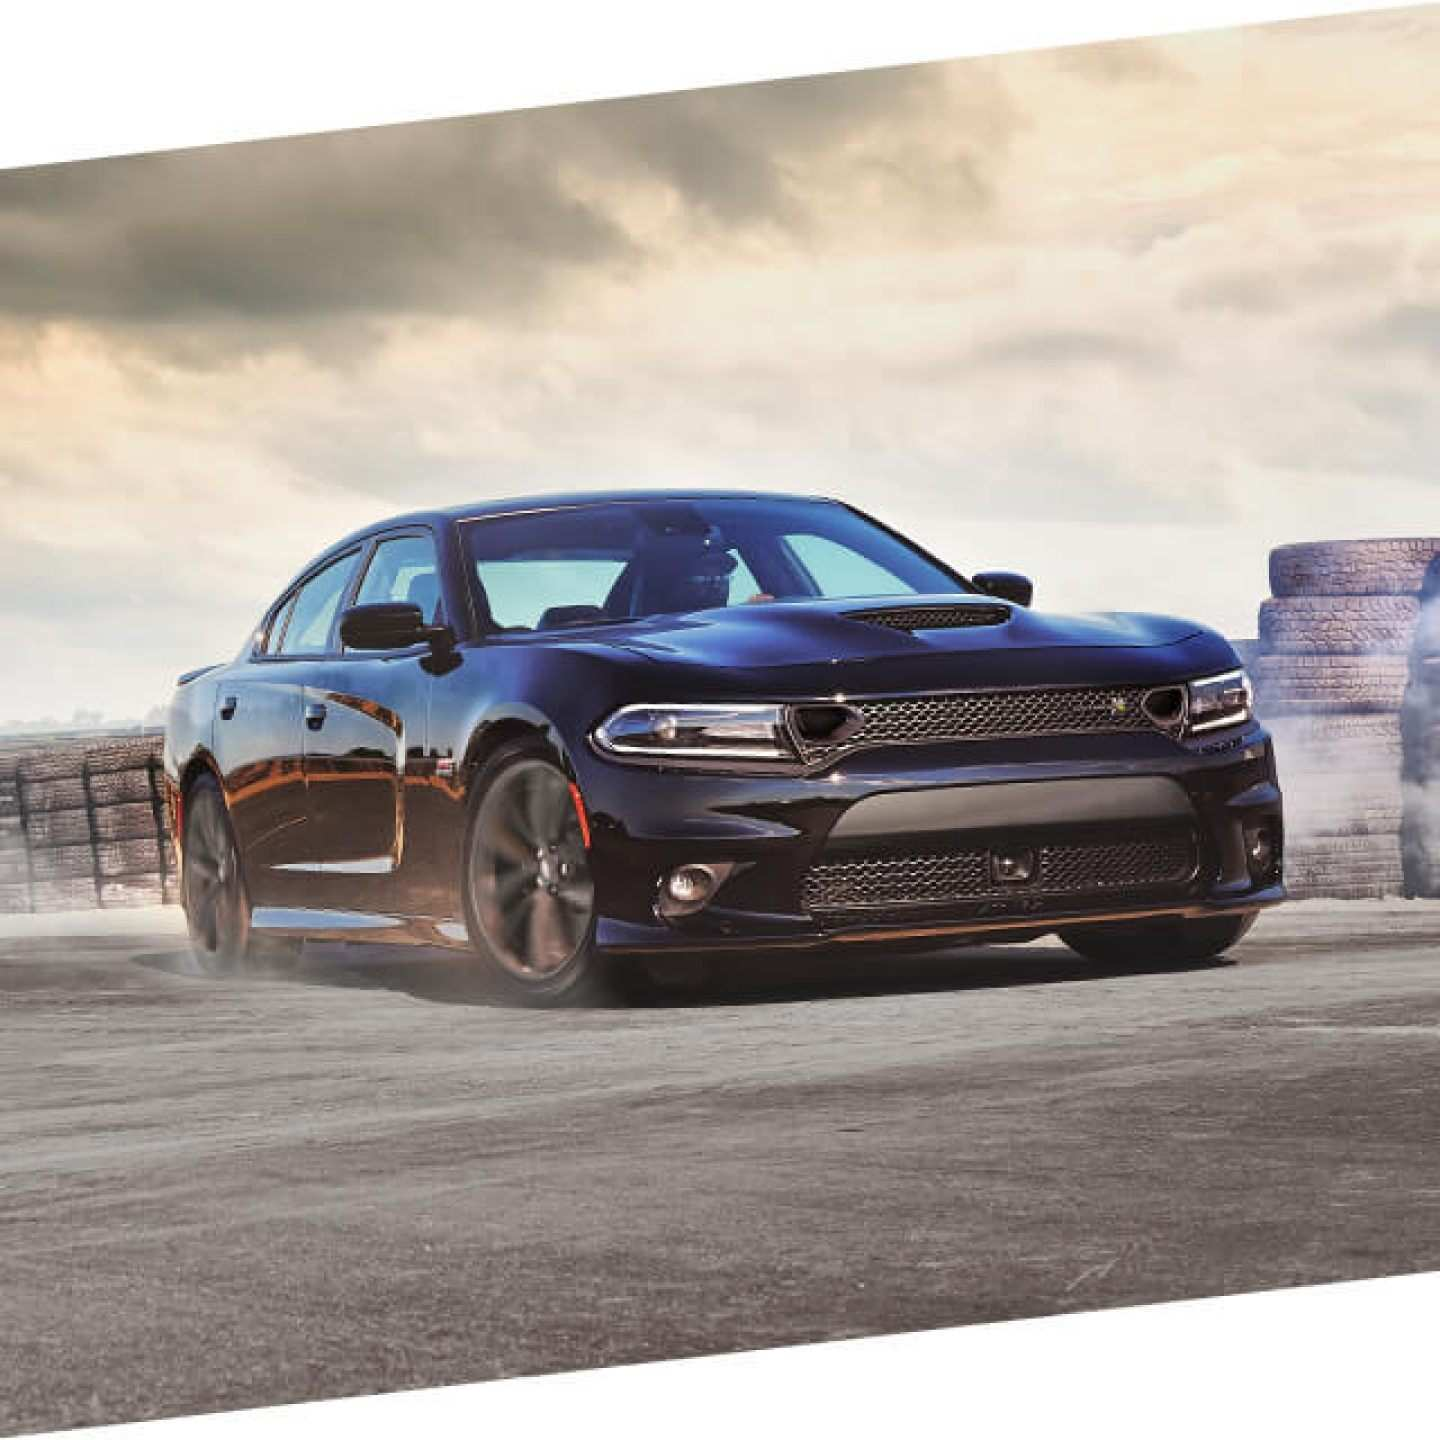 86 The Best 2019 Dodge Charger SRT8 Review